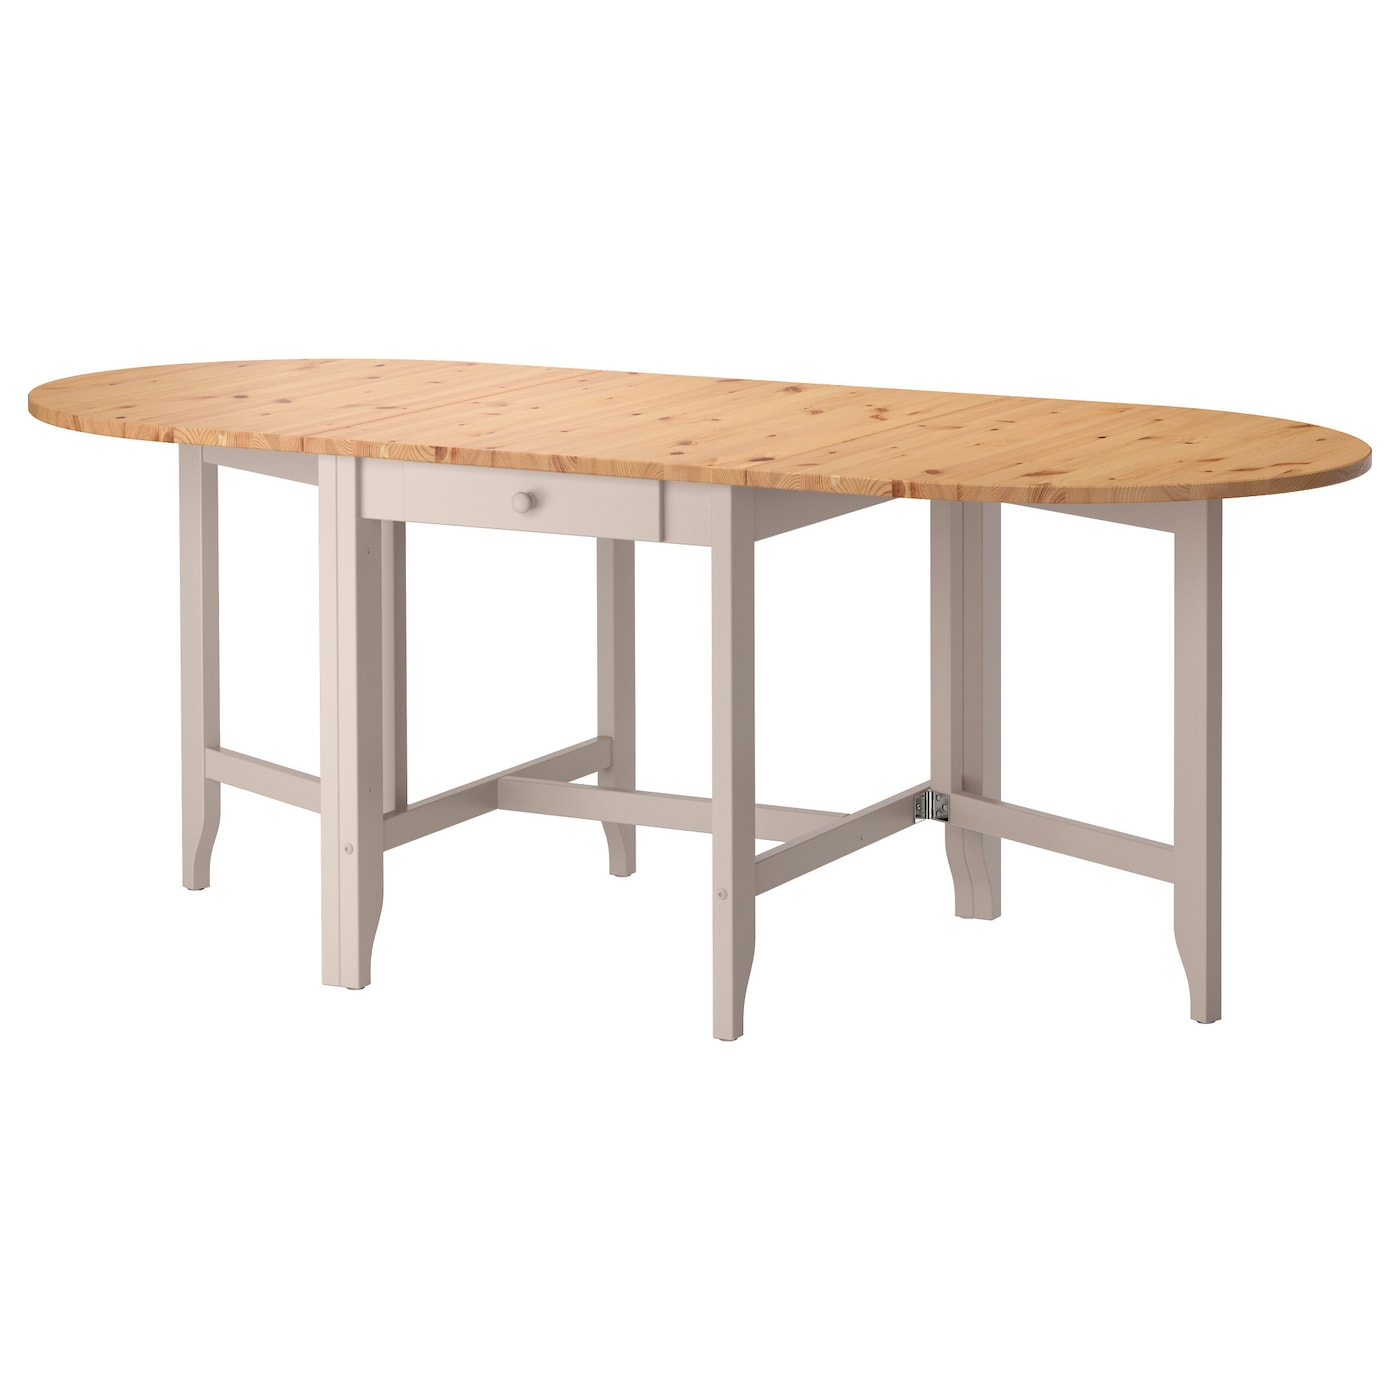 Ikea Kitchen Table: Dining Tables & Kitchen Tables - Dining Room Tables